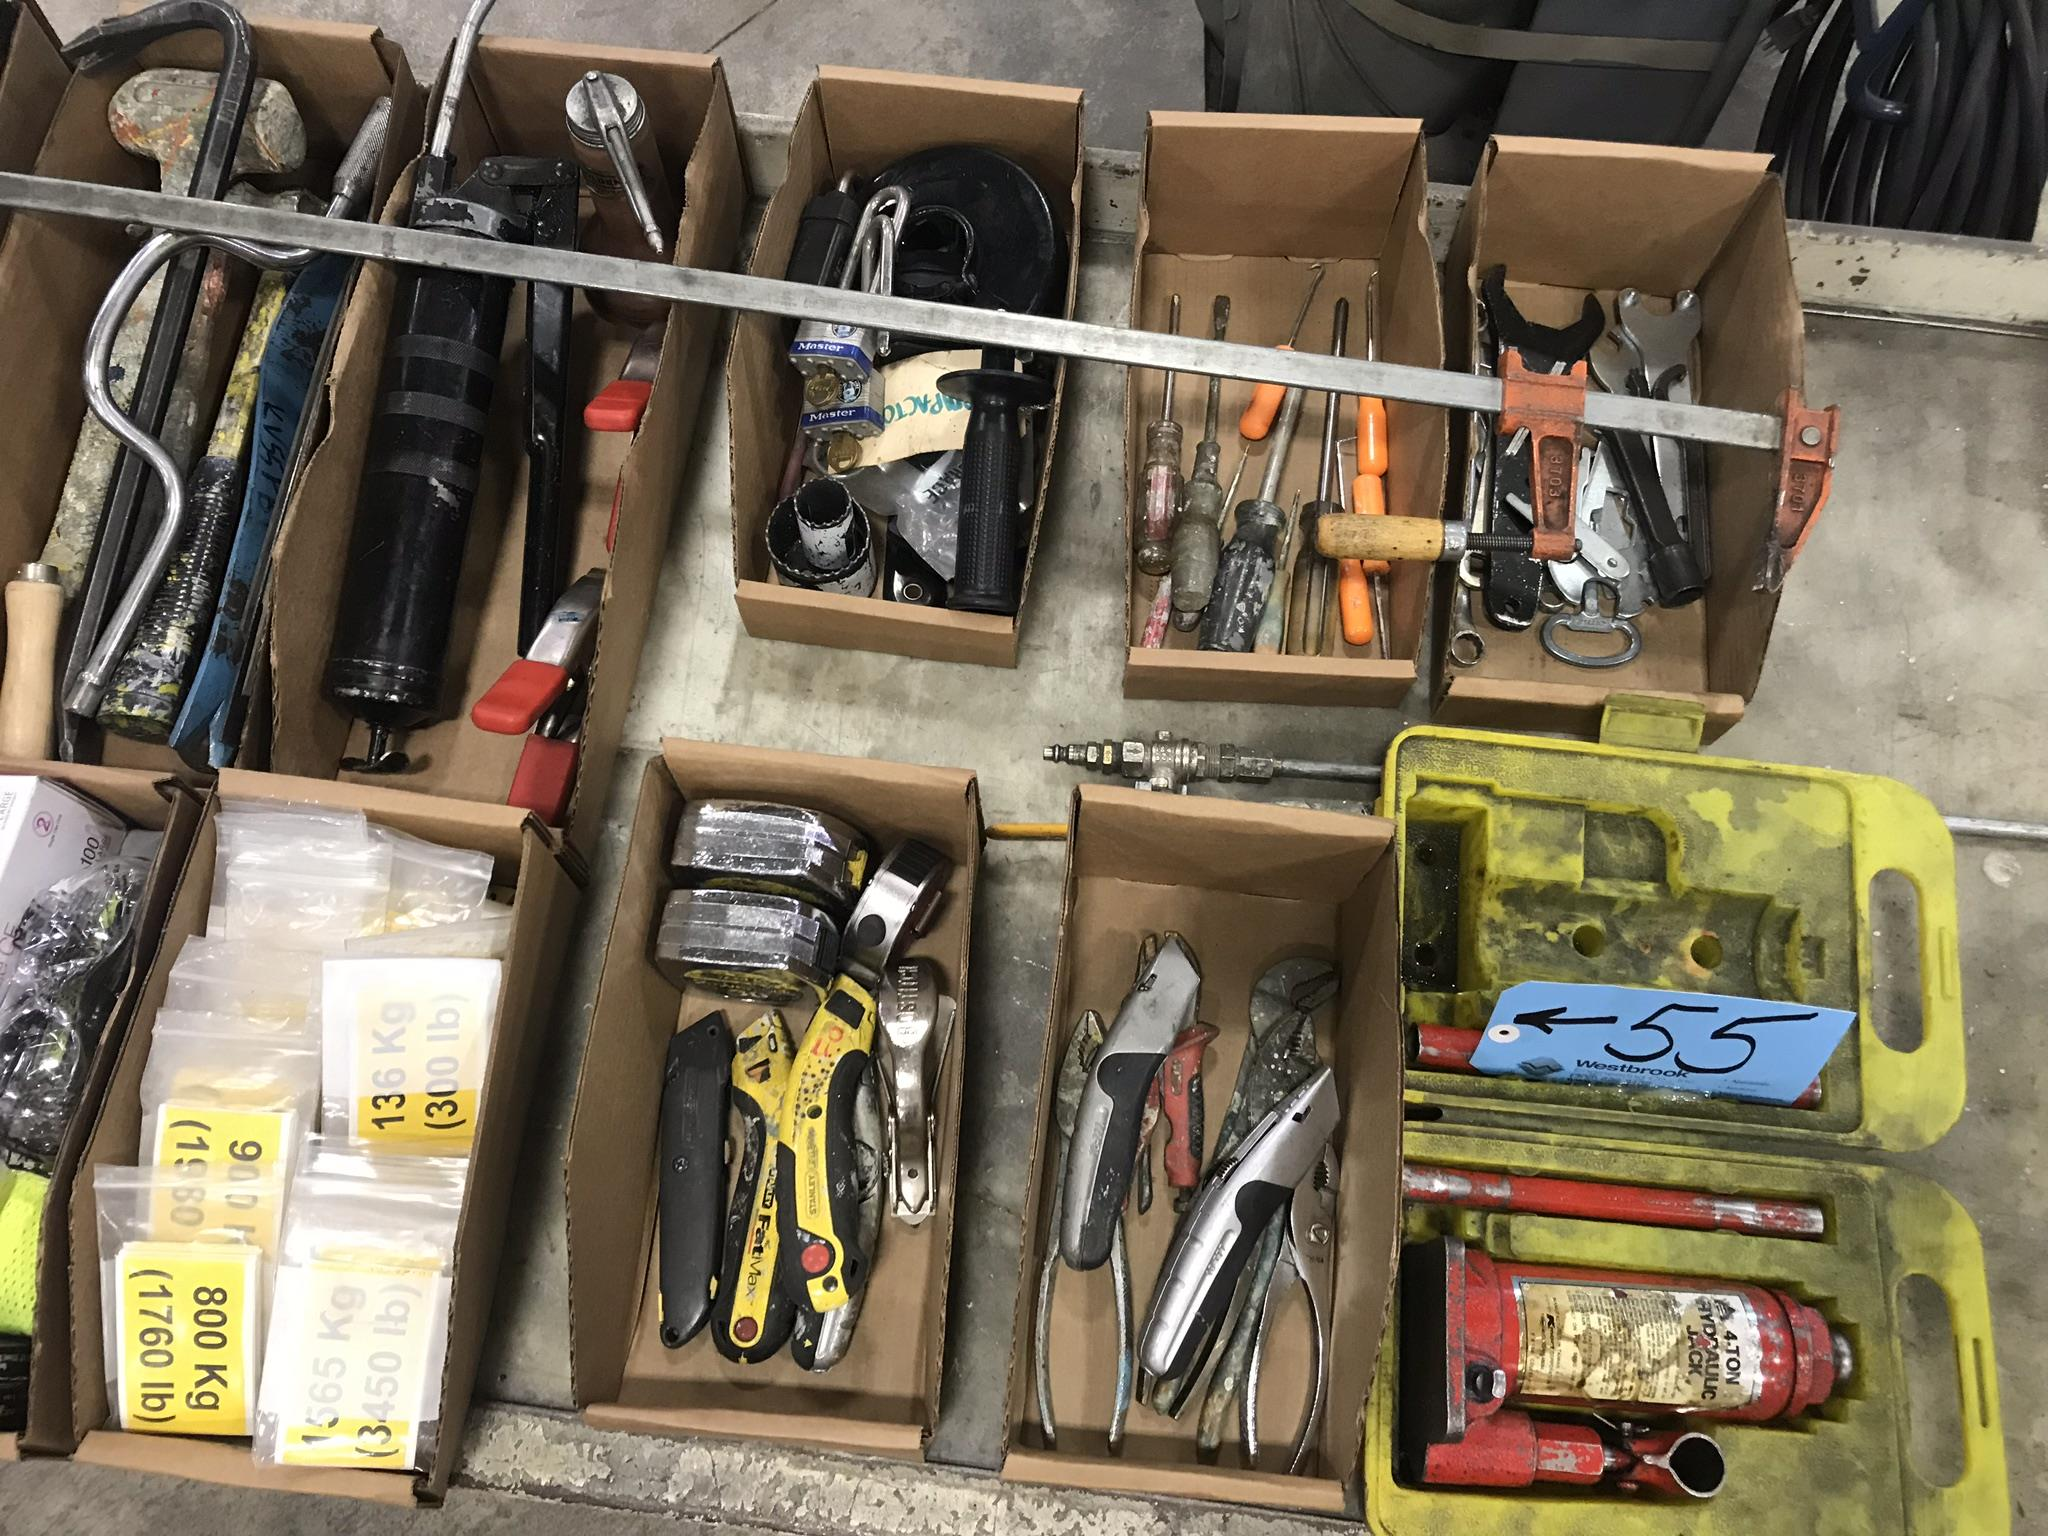 Lot-Asst'd Hand Tools in (11) Boxes with (1) 4-Ton Bottle Jack - Image 3 of 3